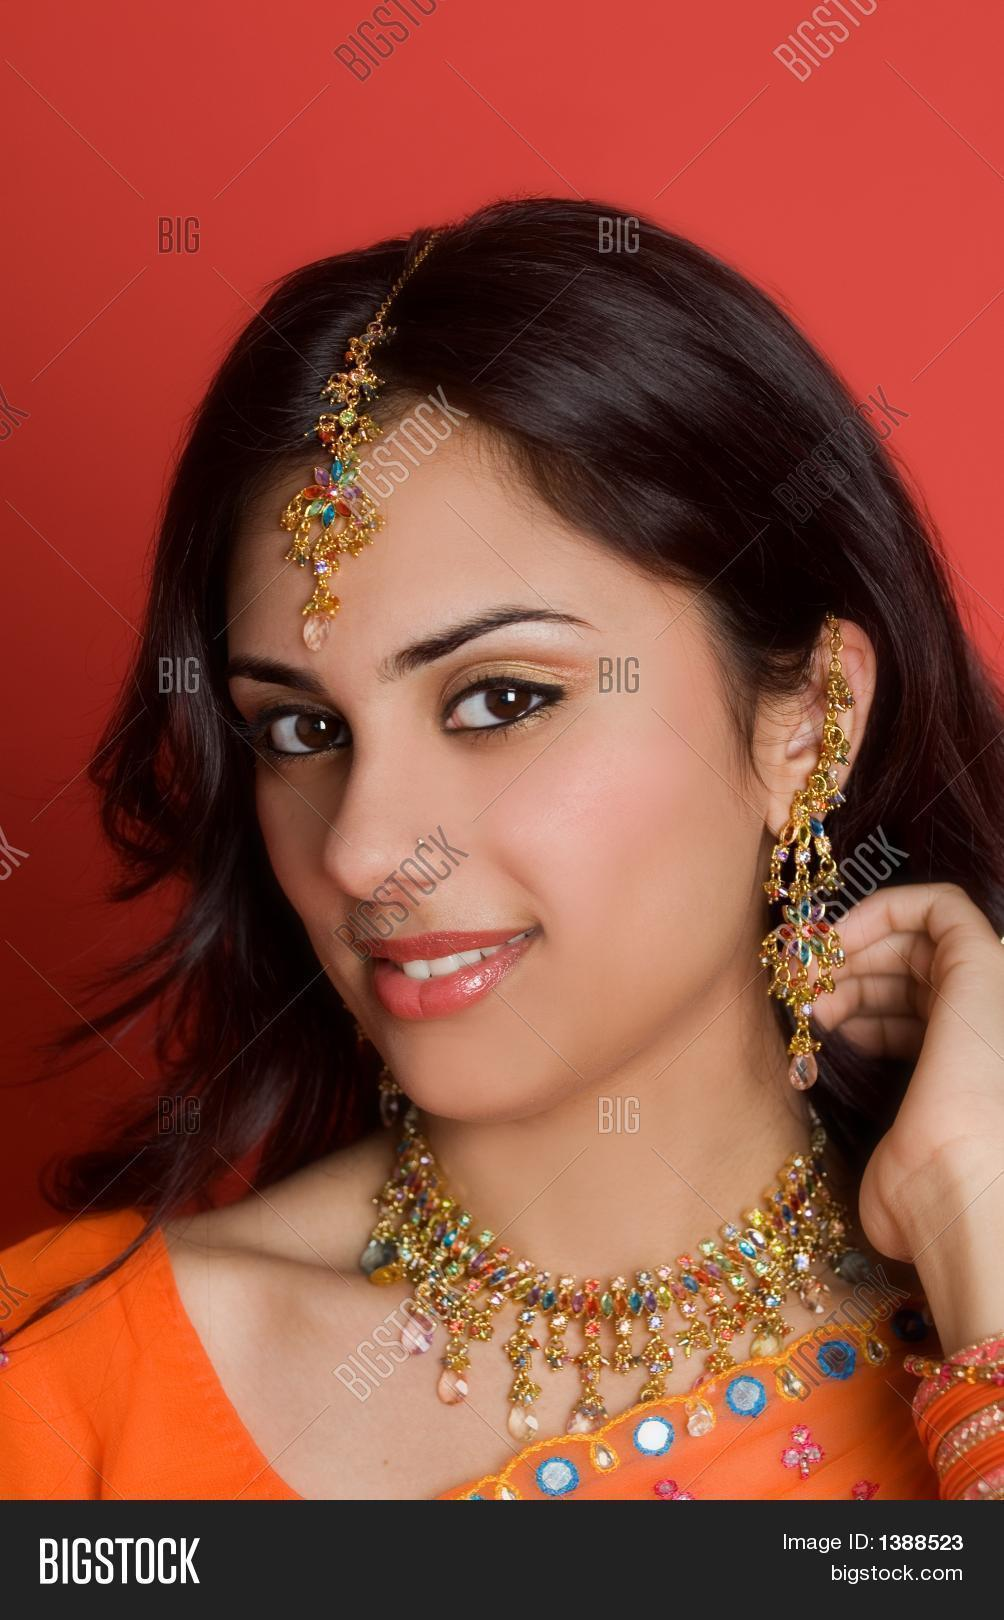 hindu single women in lubec Indian ladies, single ladies in india free indian dating and personals site view photos of singles, personal ads, and matchmaking in india do not pay for personals.